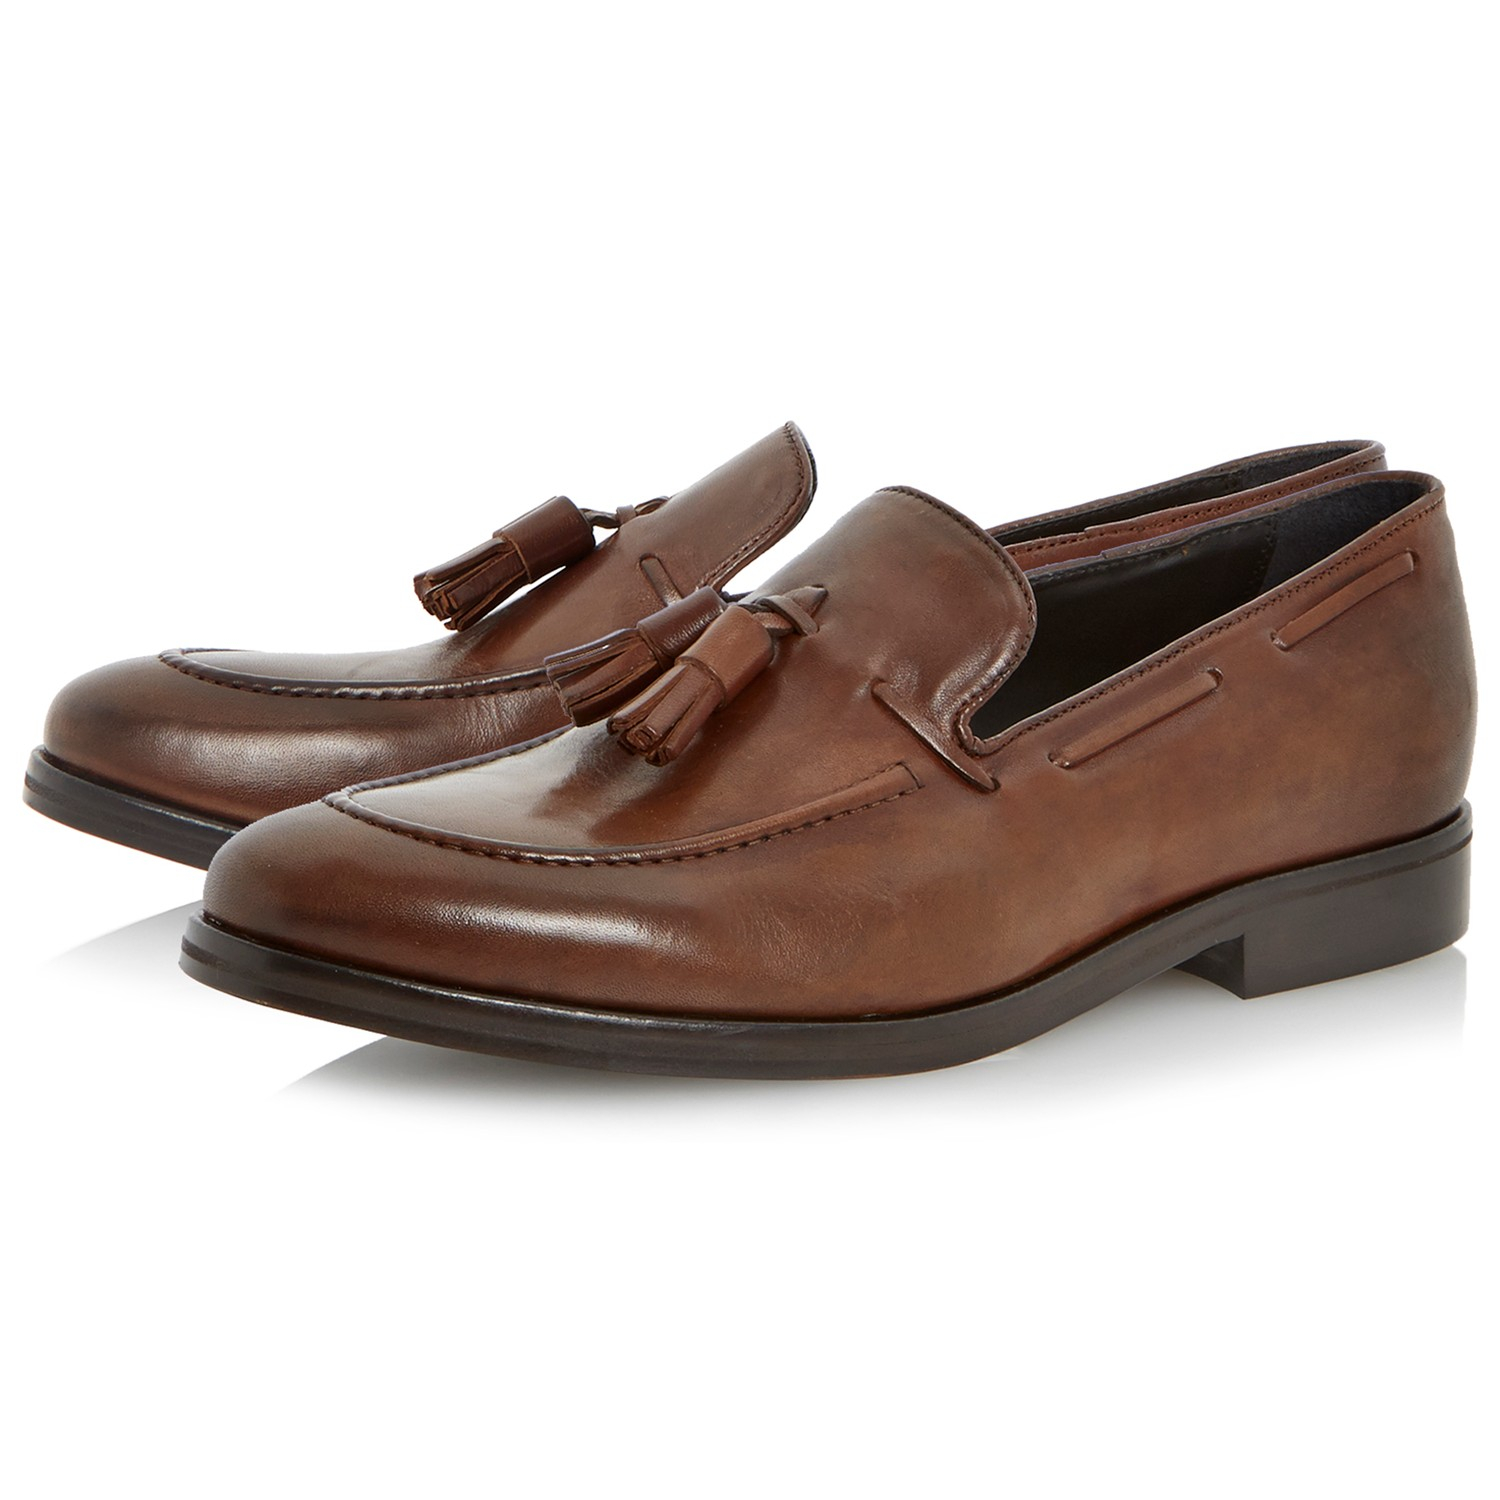 Dune Remus Leather Tassel Loafers in Brown for Men